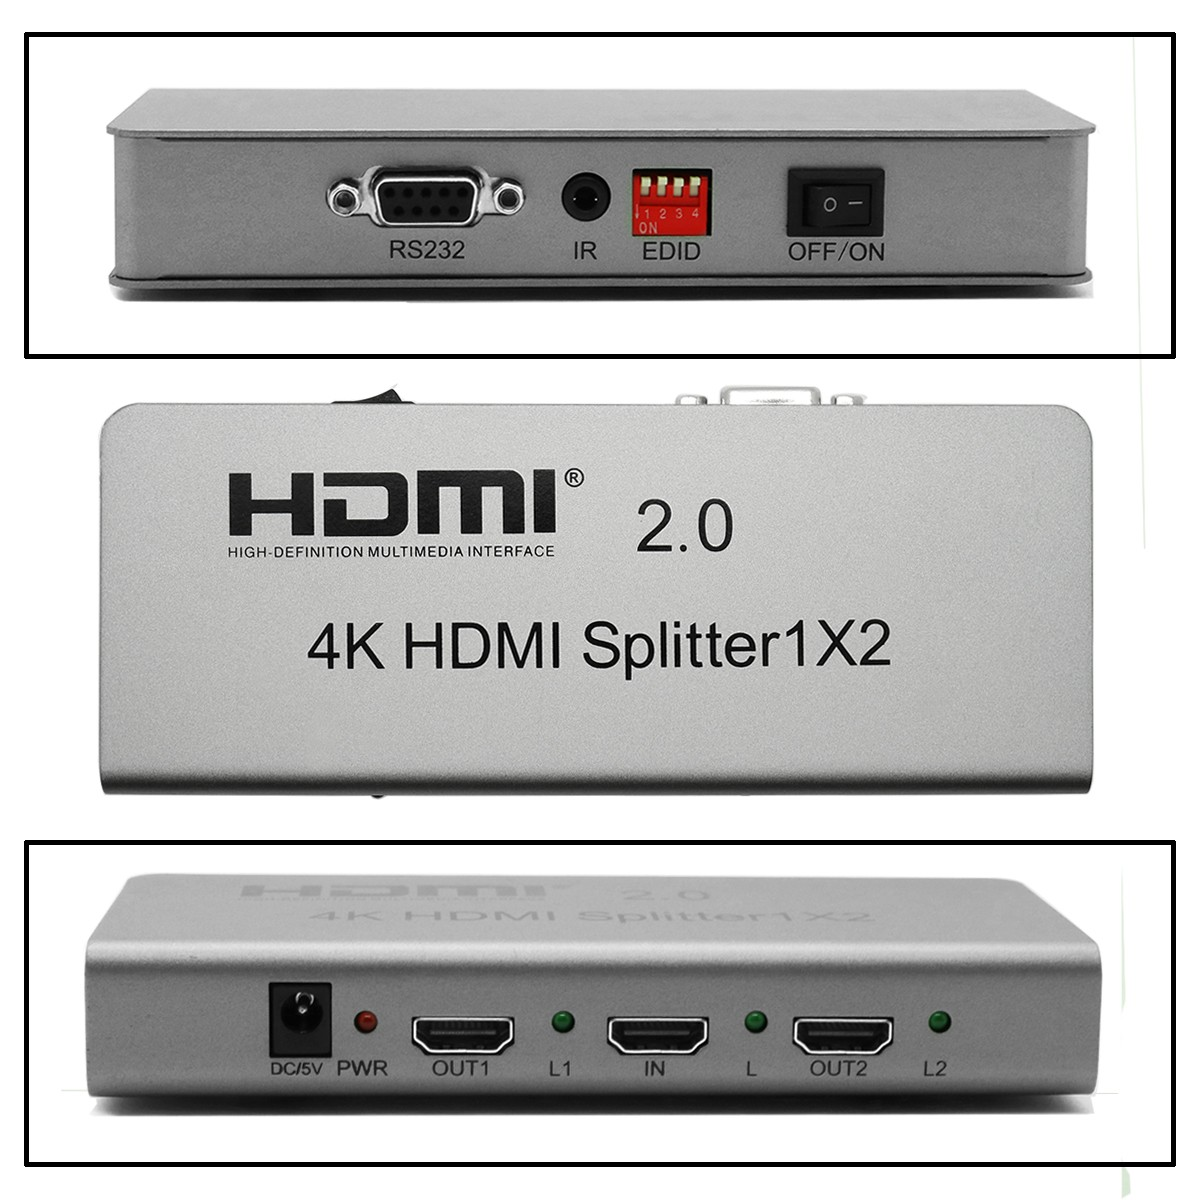 VOXLINK Full HD 1080 P 4 K HDMI 2.0 Anahtarı Splitter 1X2 3D 1 2 OUT HDMI Switcher HDTV Desteği IR Uzatma RS232 EDID PS3